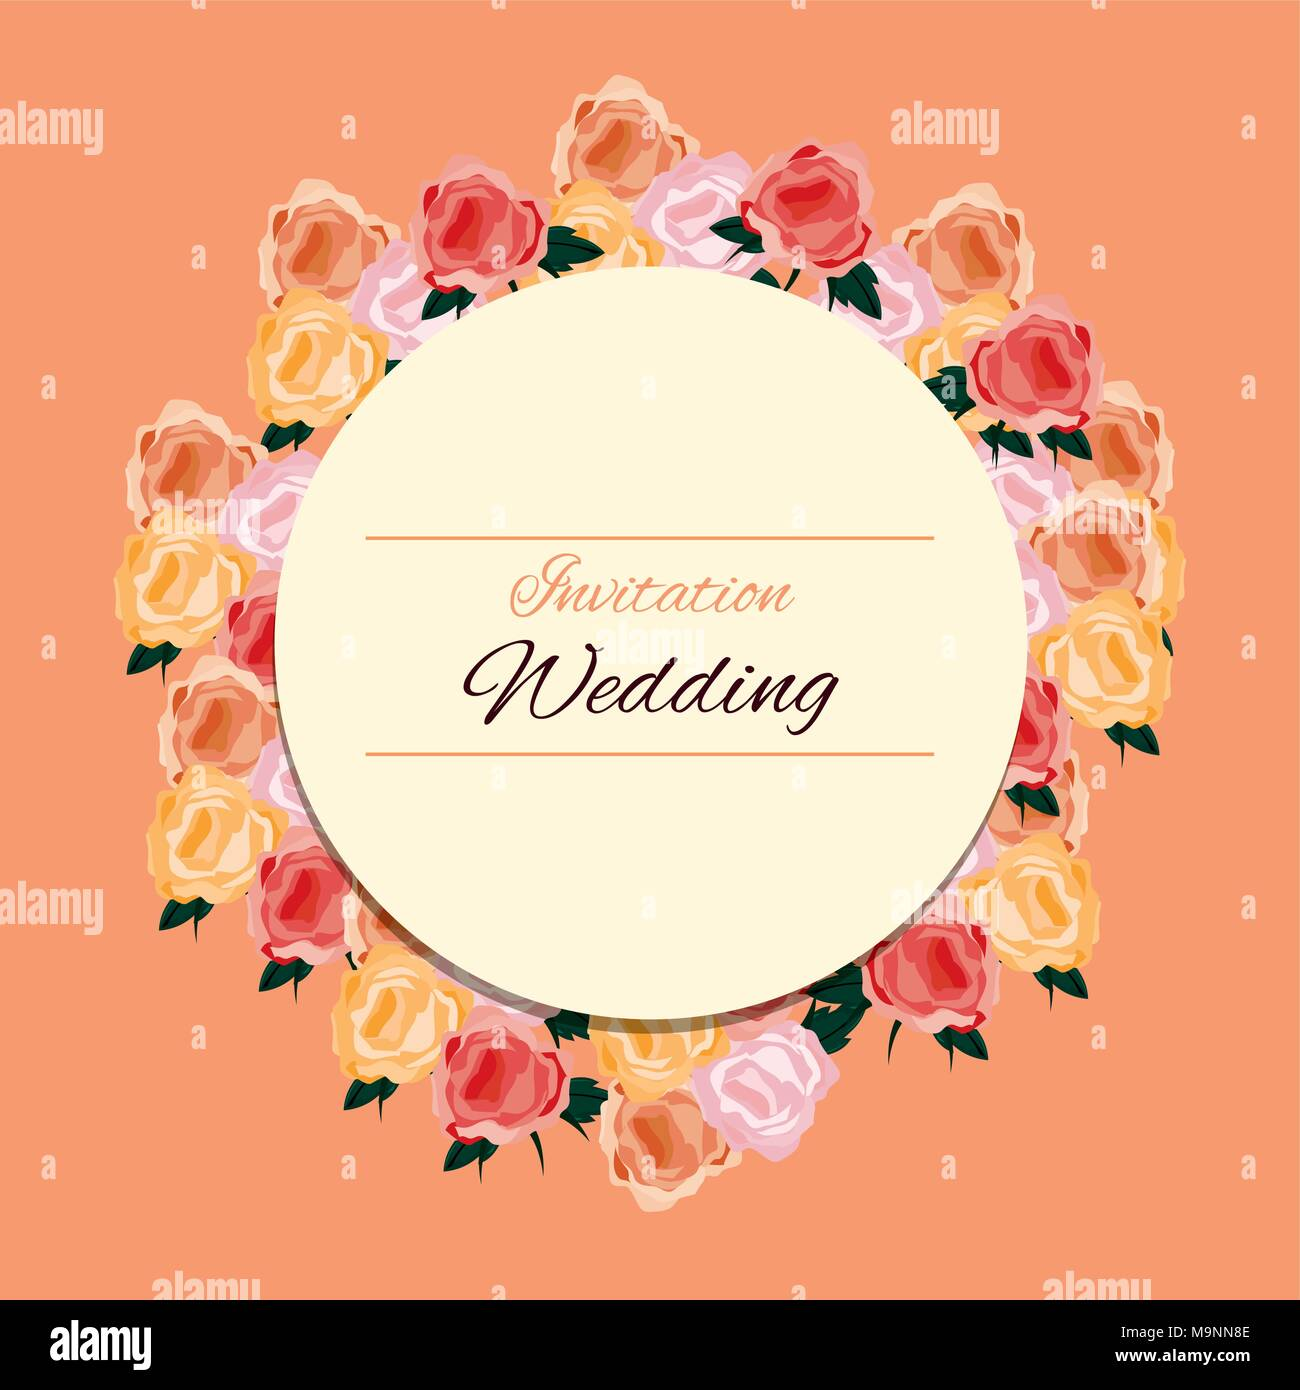 Floral Wedding Invitation Design With Decorative Wreath Of